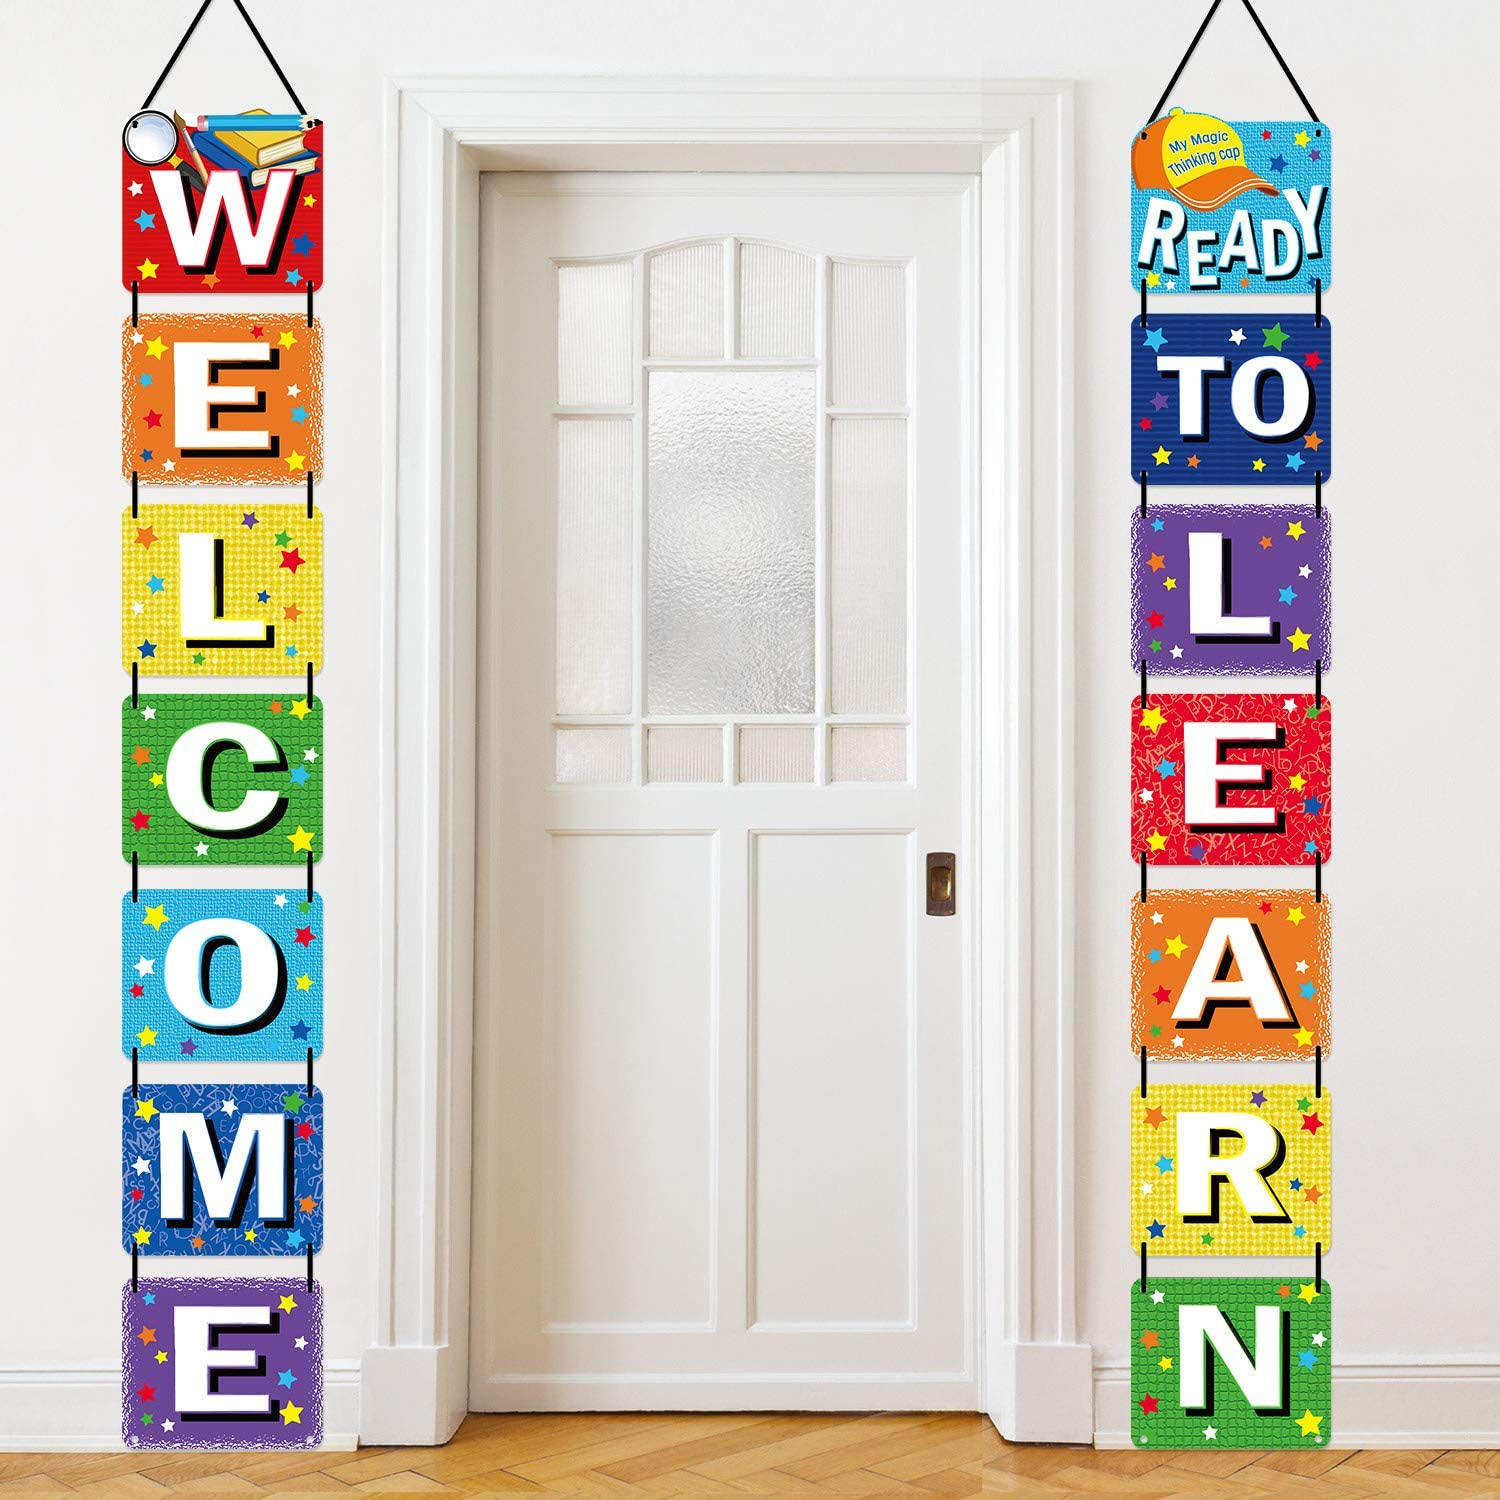 Back to School Banner Welcome Banner for First Day of School Welcome Ready to Learn Classroom Party Supplies Photo Props for Kindergarten Pre-school Primary High School Classroom Decorations